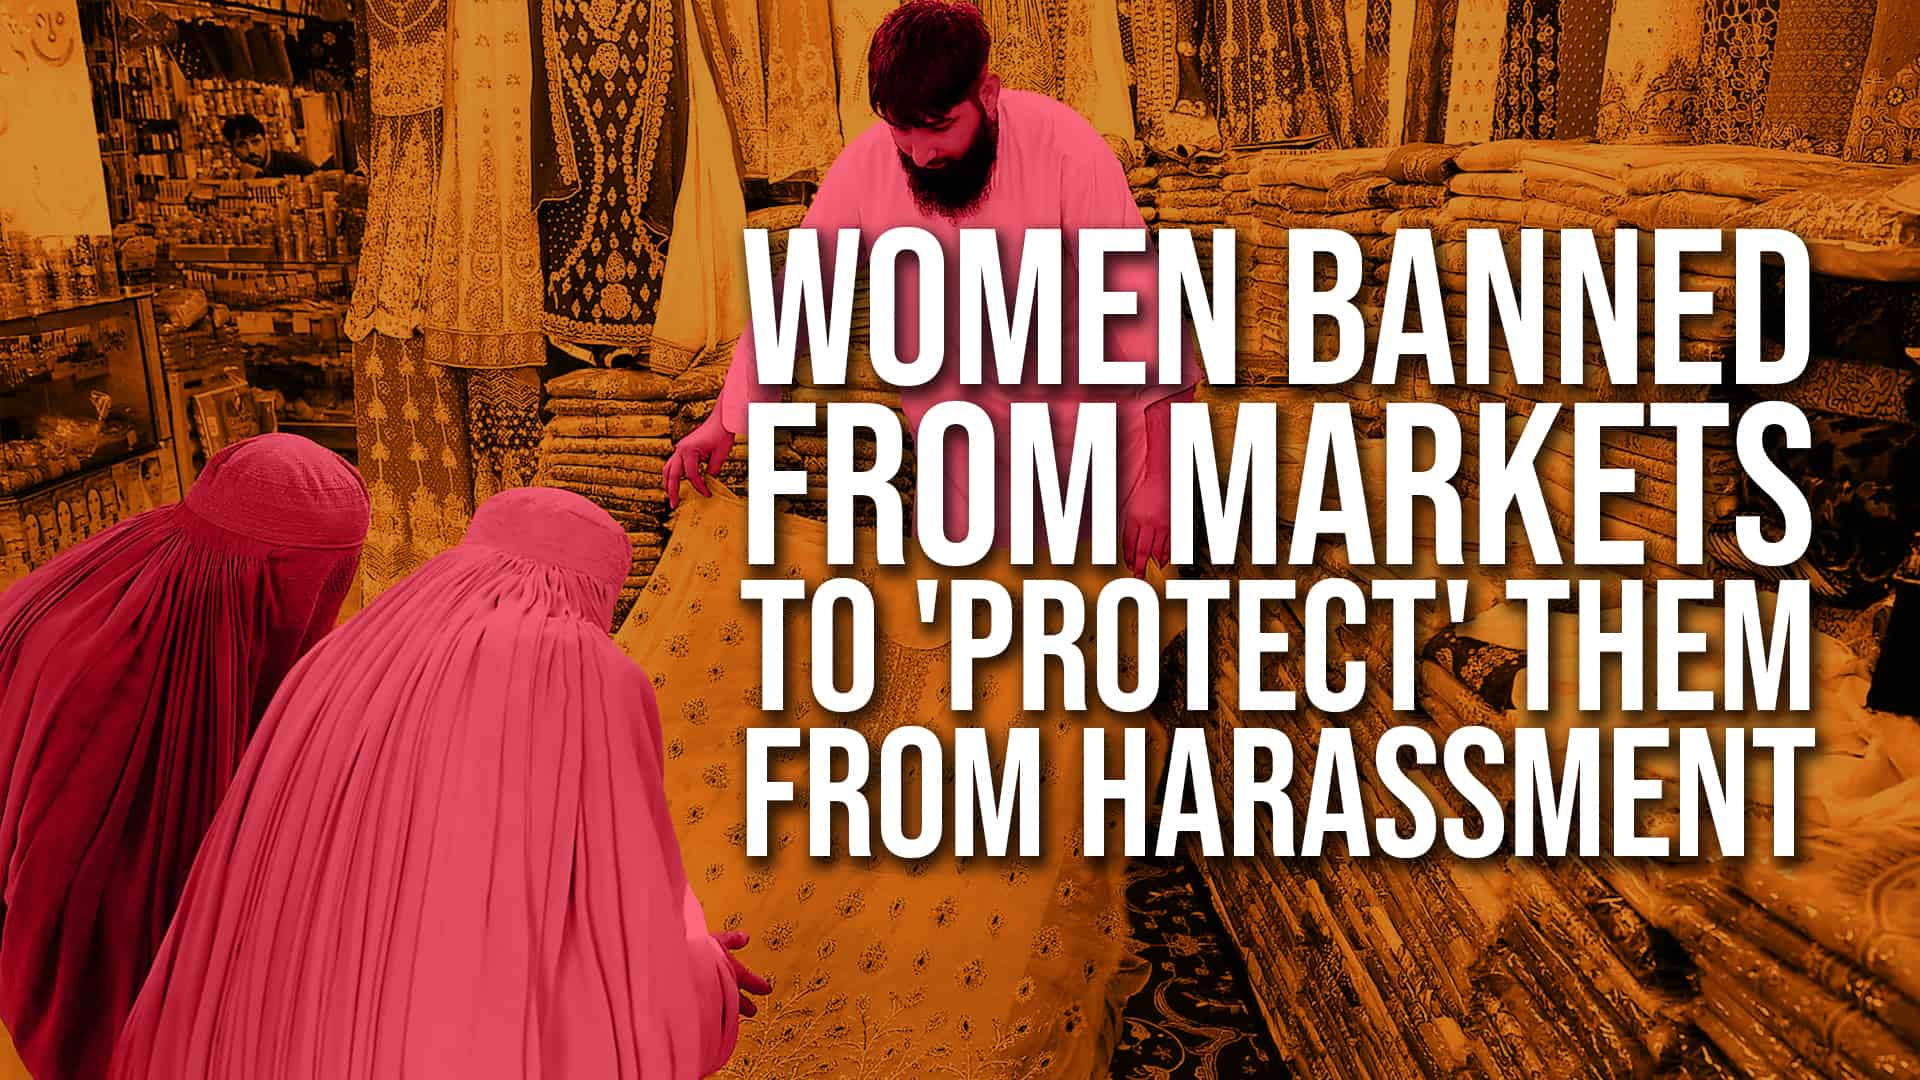 Women Banned from Markets to 'Protect' them from Harassment